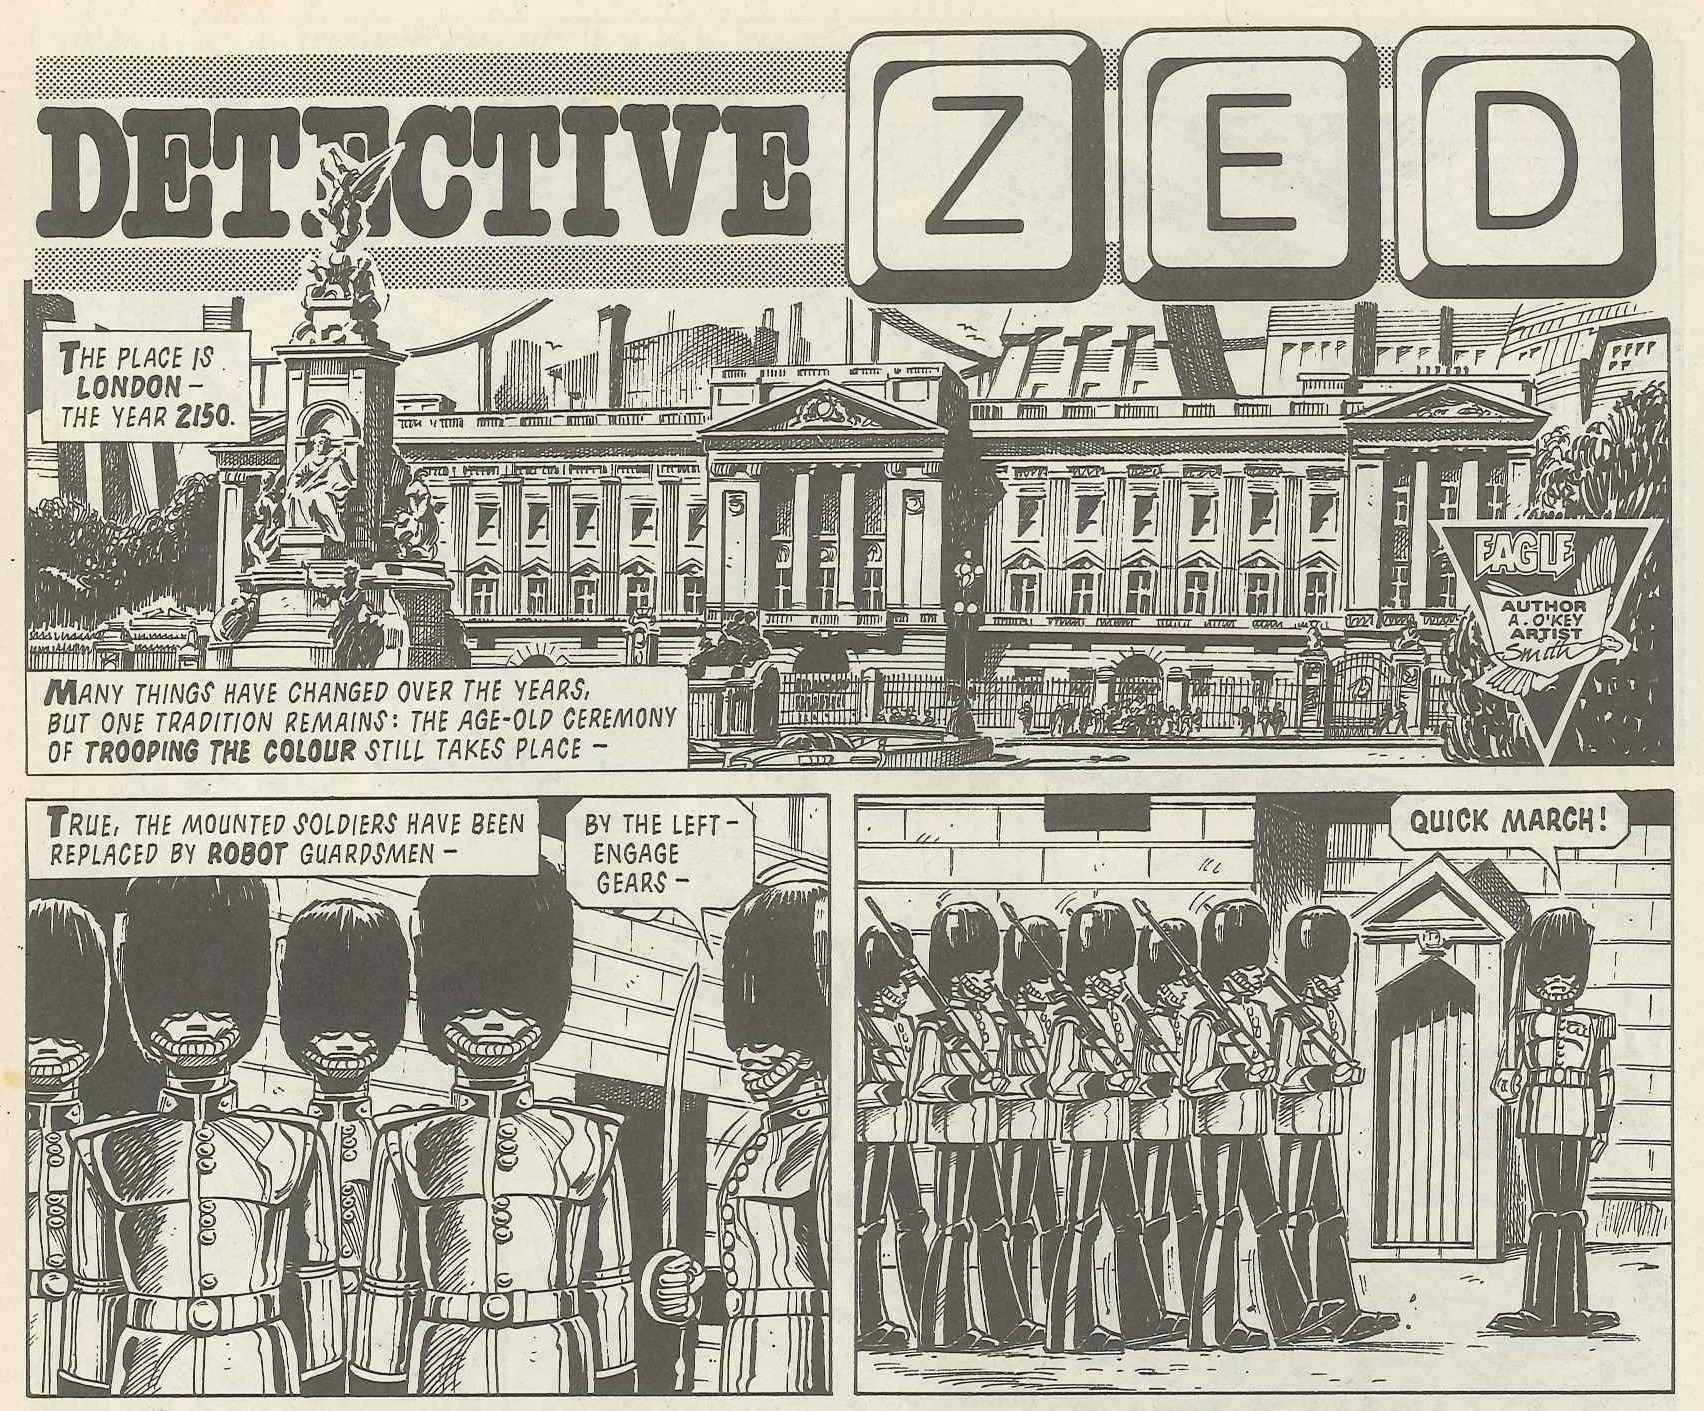 Detective Zed: Alan Grant and John Wagner (writers), Robin Smith (artist)